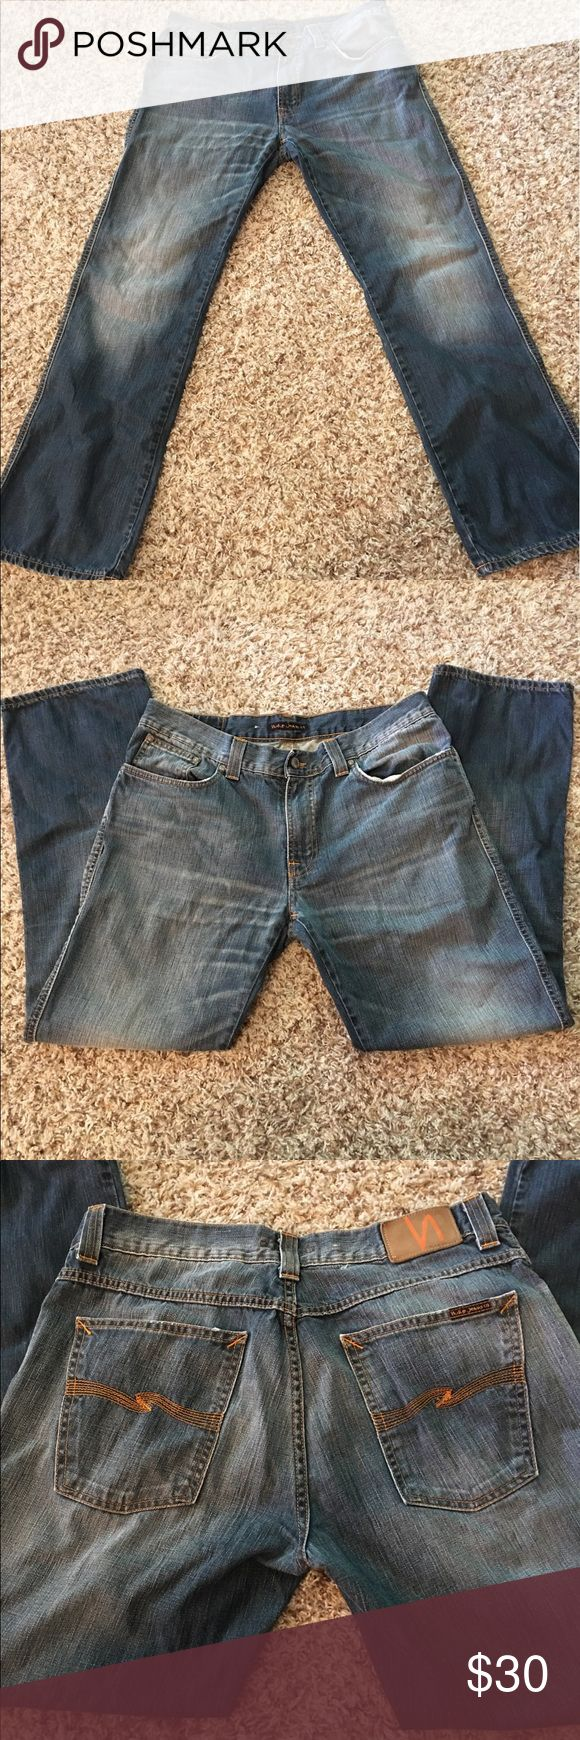 Men's Nudie Jeans Slim Jim Scraped Seaweed! 36x32 These jeans are in excellent condition! Nudie Jeans Jeans